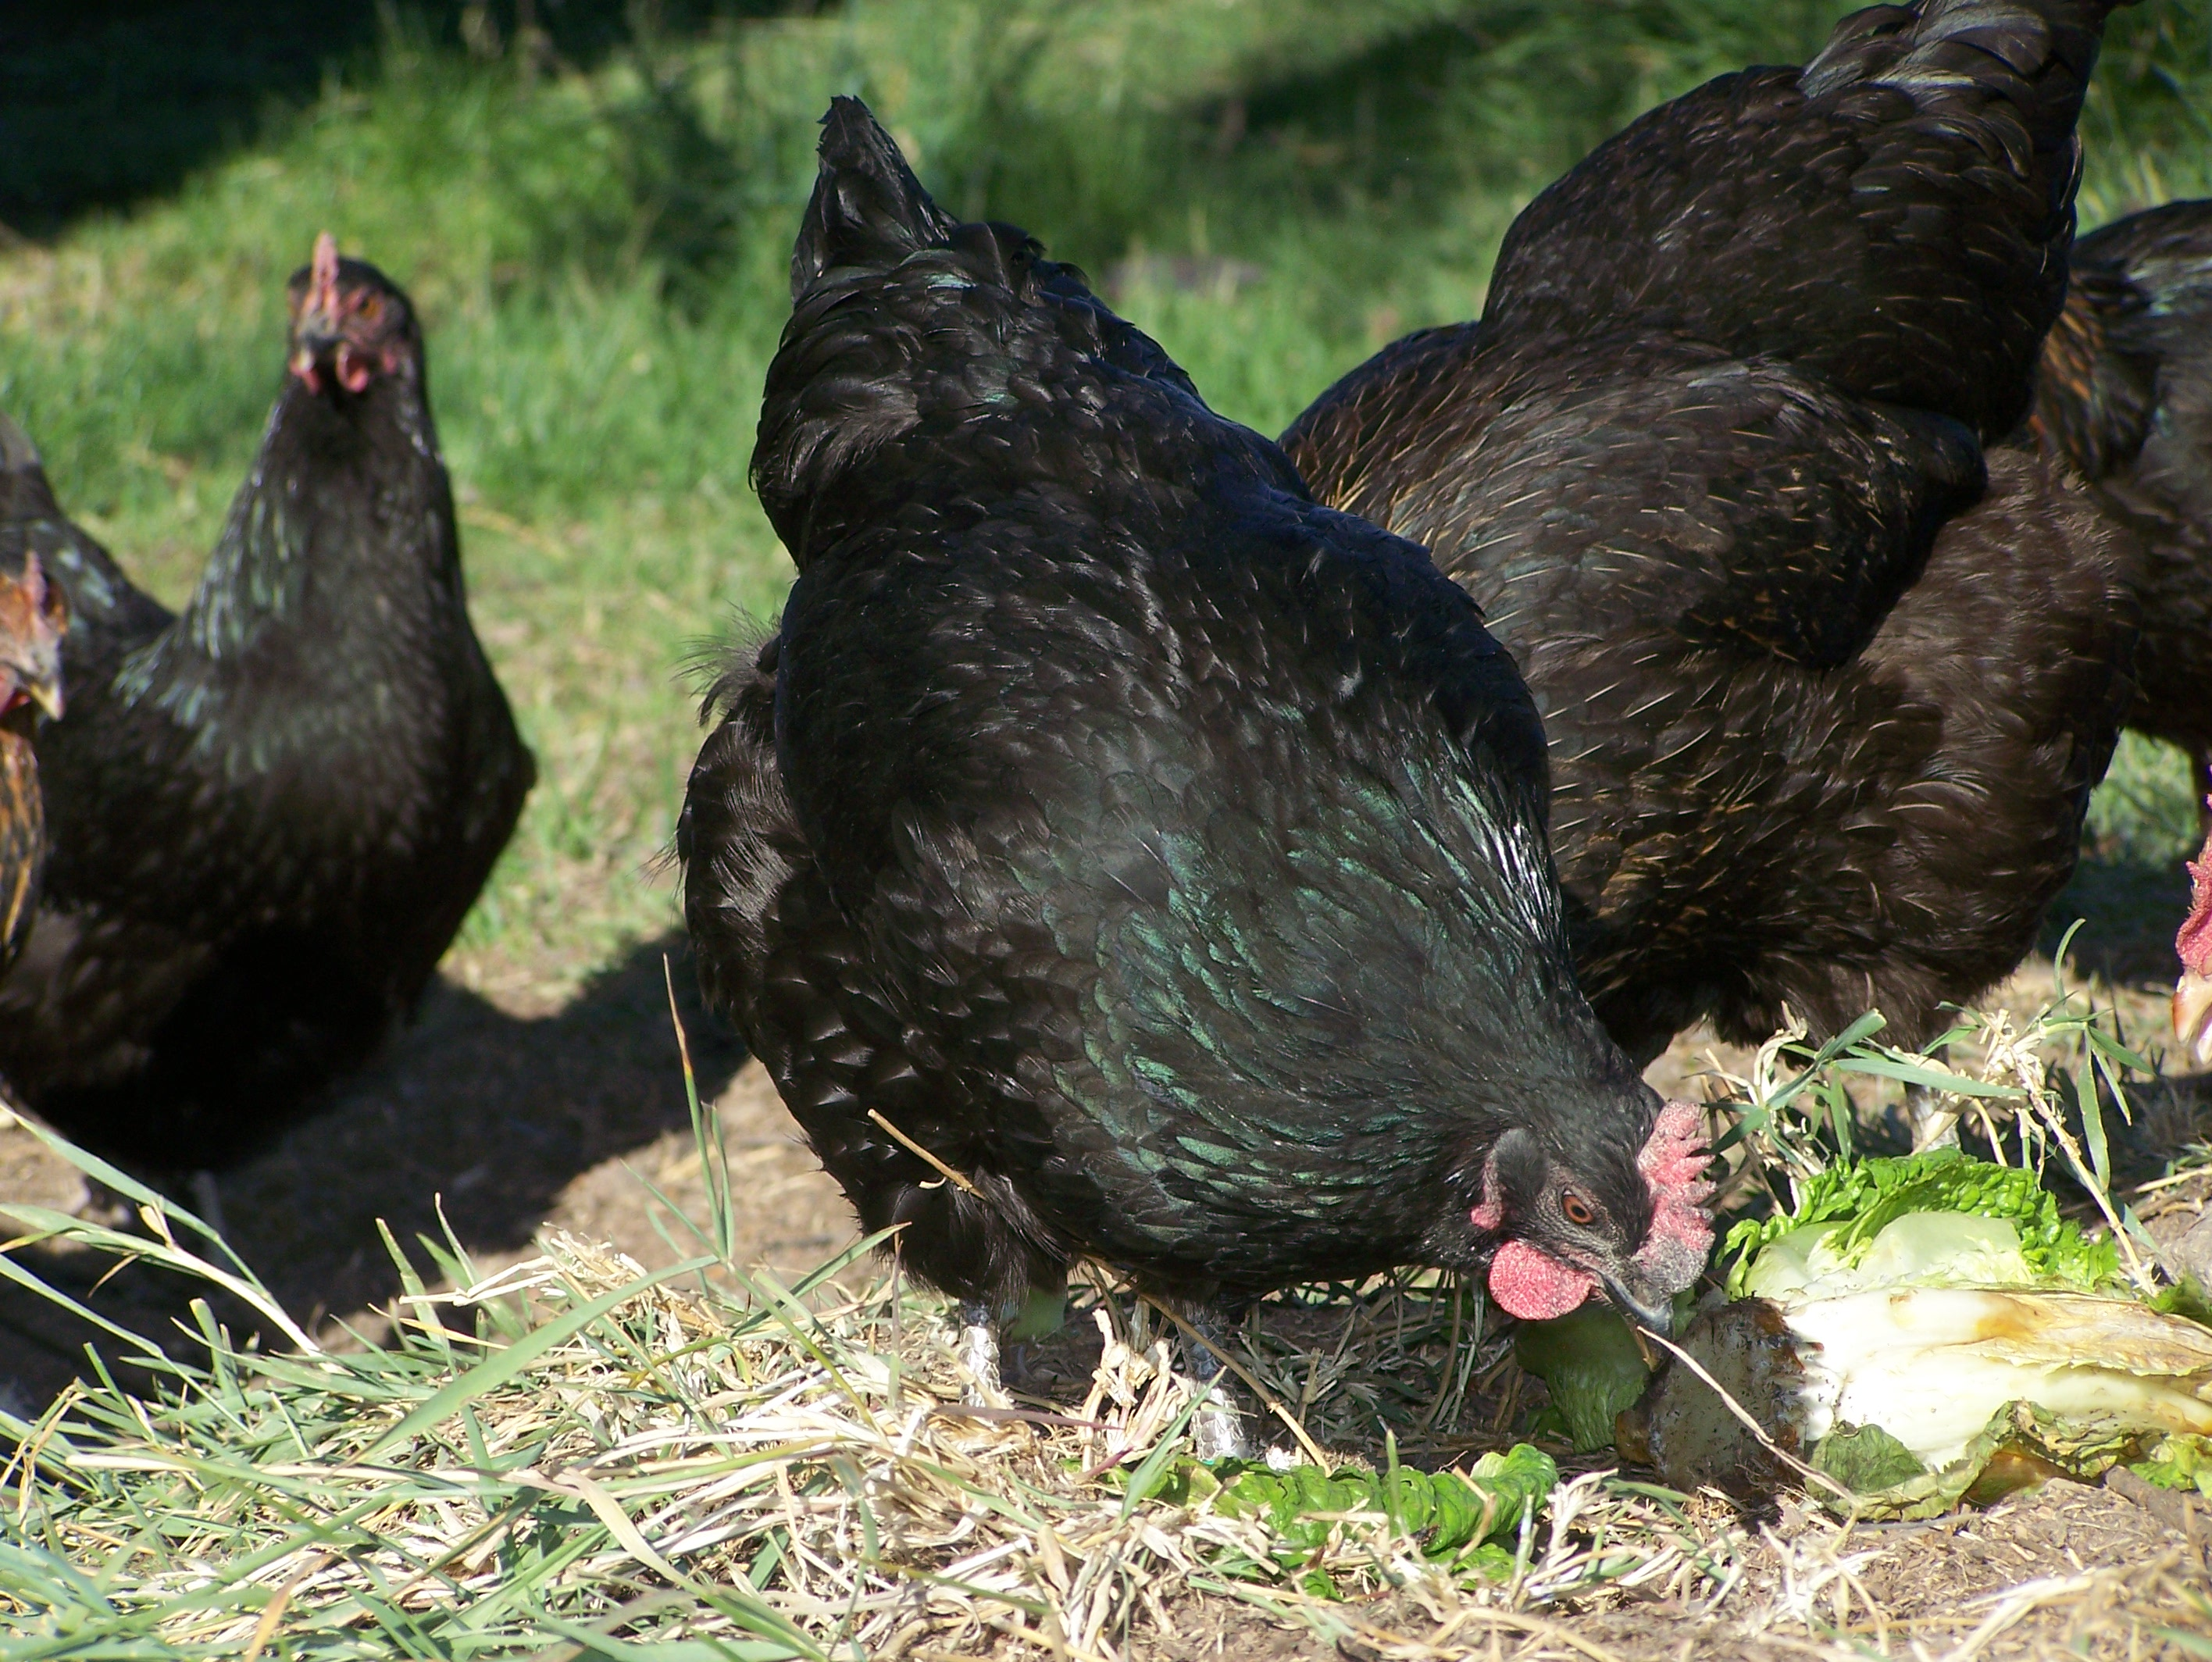 You don't have to raise chickens to butcher them! Cull your neighbor's old hens and use the delicious recipes outlined for you.